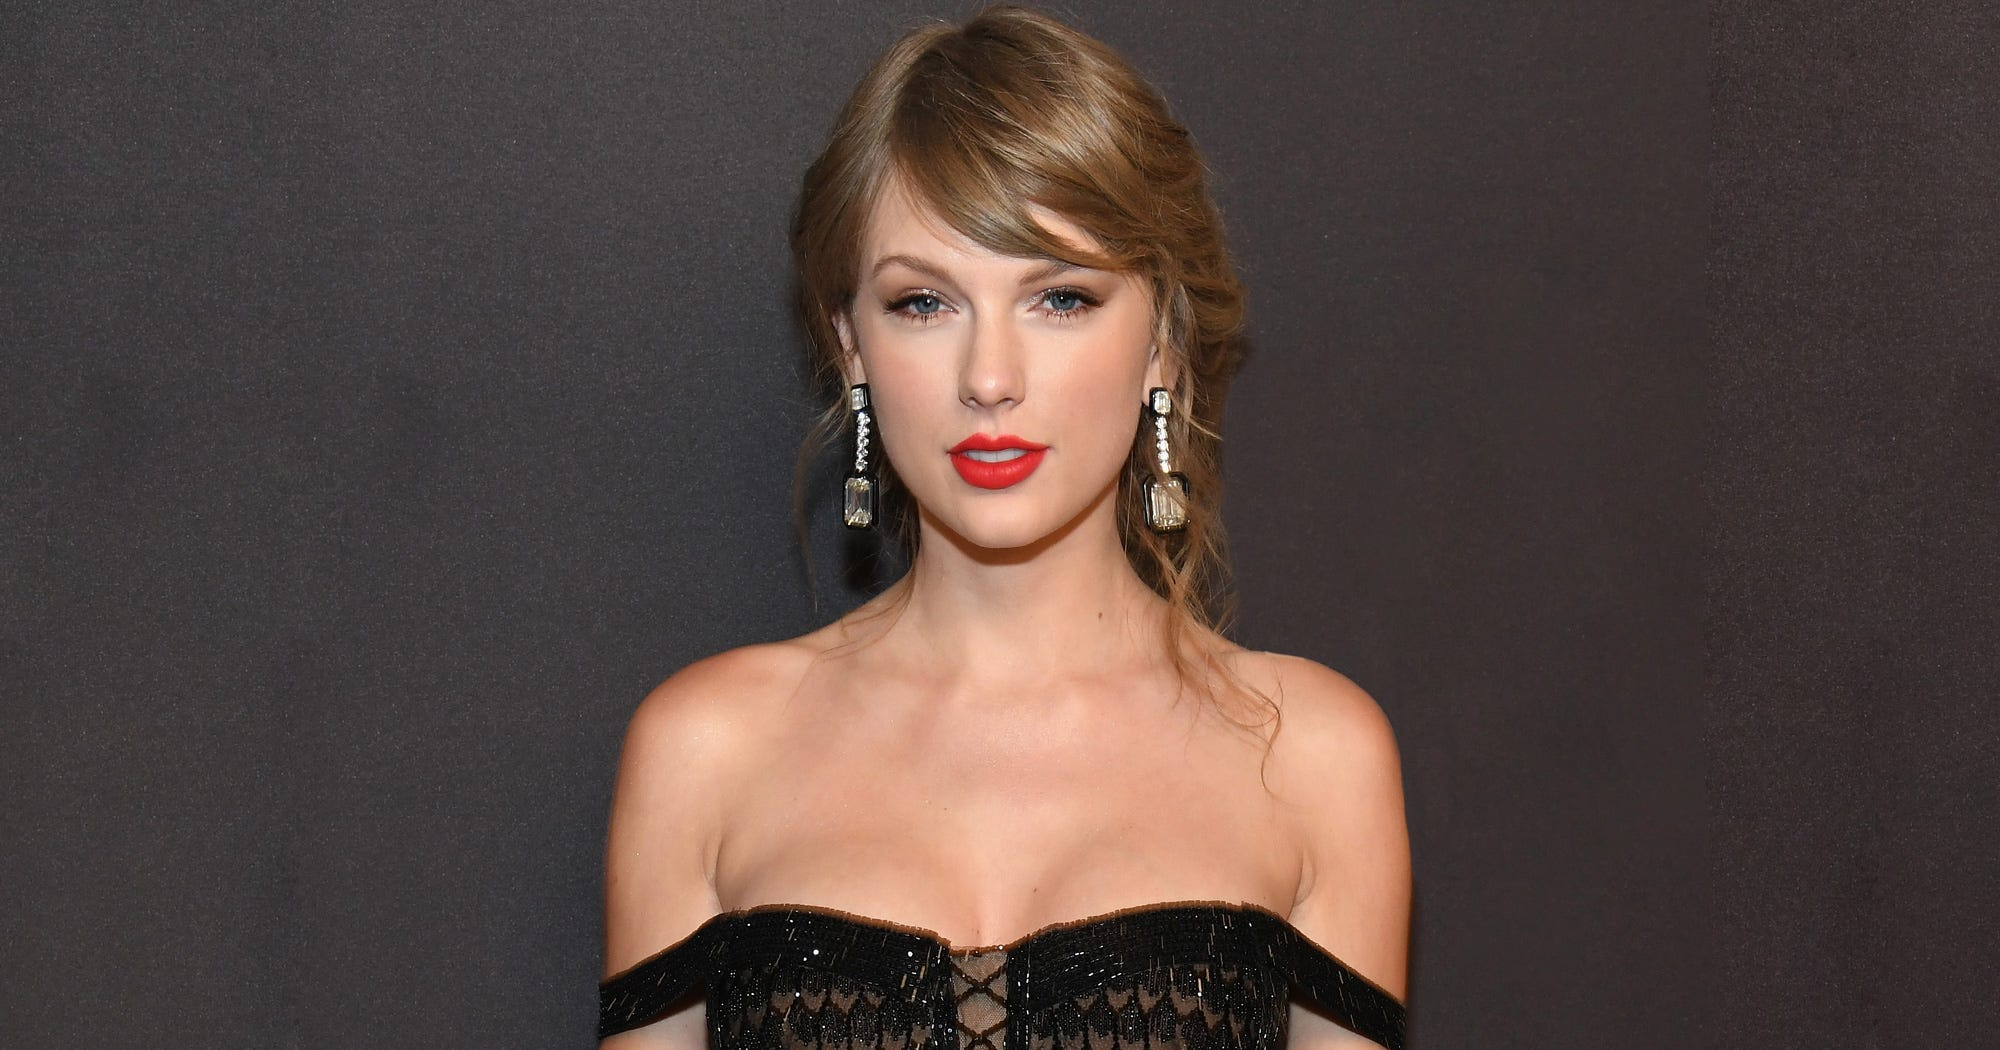 Is Taylor Swift Working On Her Next Album?